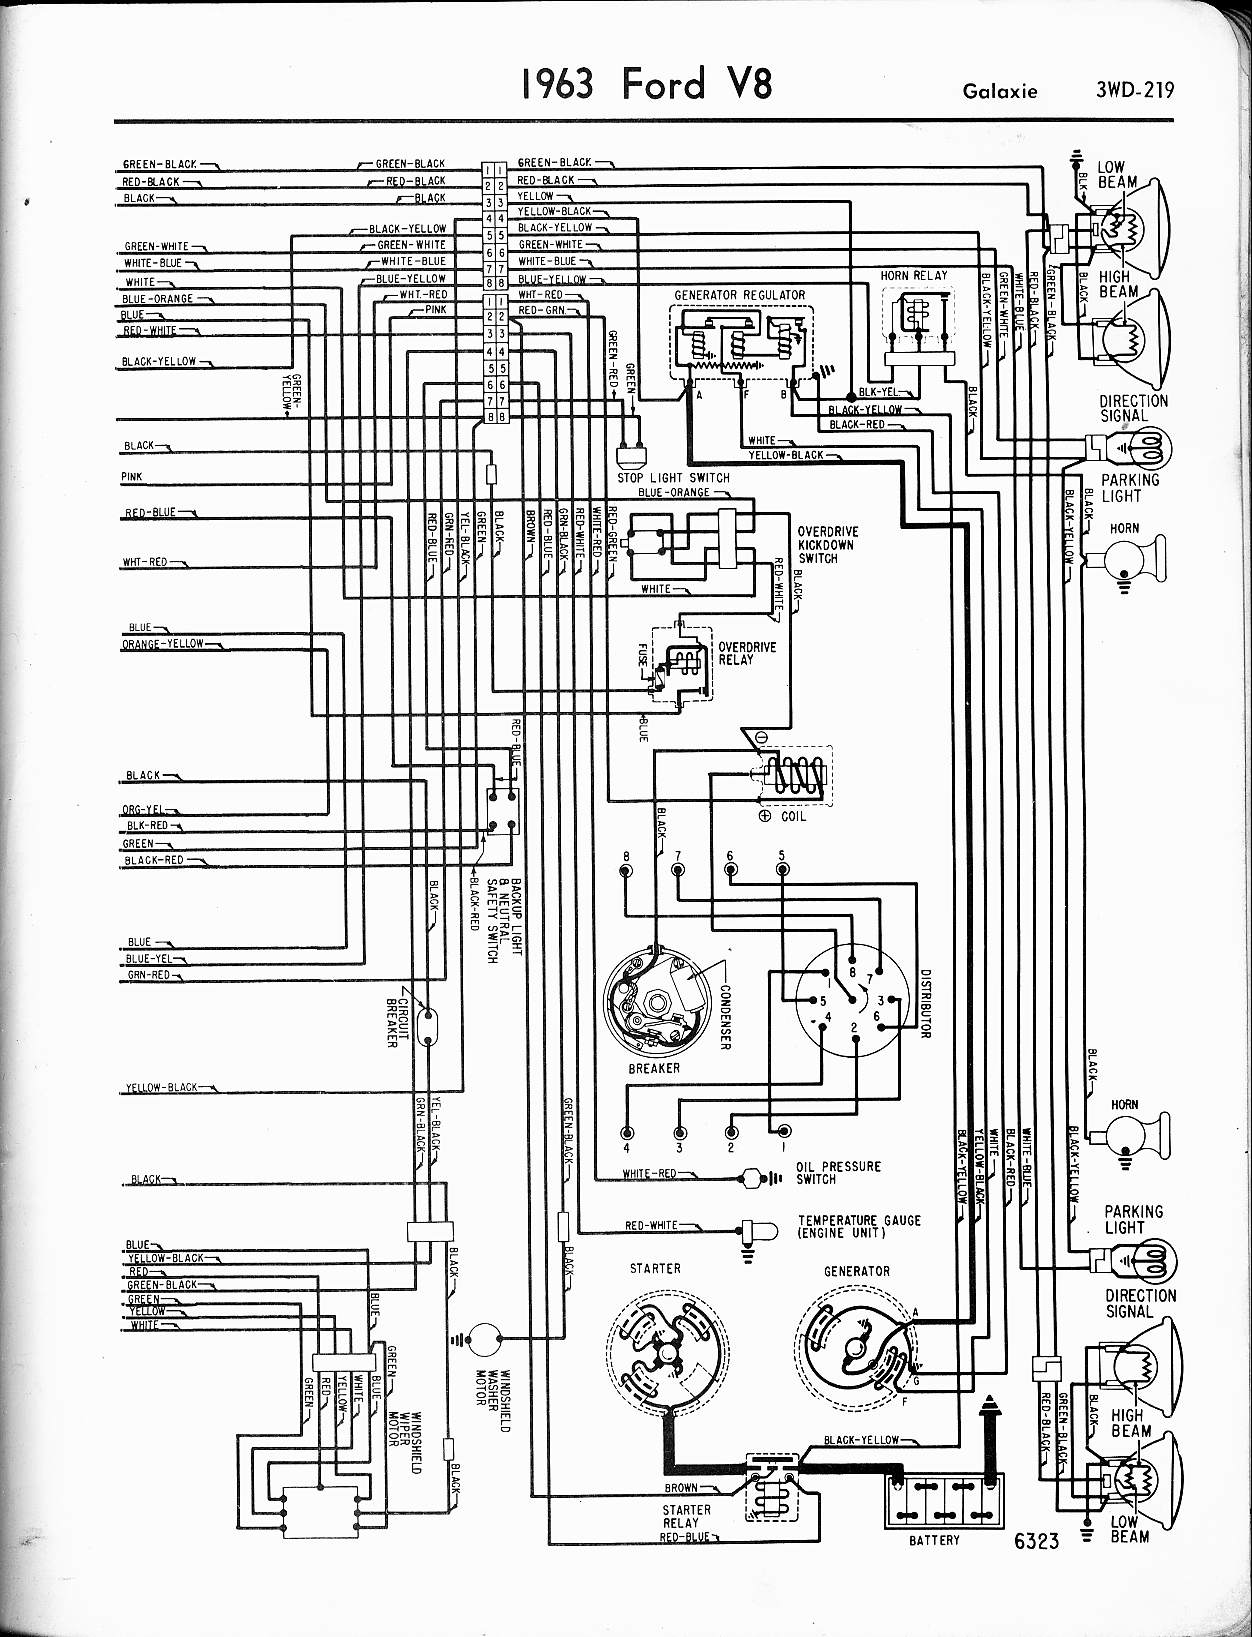 1969 Ford Torino Wiring Diagram - Wiring Diagram Data  Ford Ranchero Wiring Diagrams on 1970 ford ranchero suspension, 1971 ford mustang wiring diagram, 1970 chevy nova wiring diagram, 1970 chevrolet chevelle wiring diagram, 1970 plymouth gtx wiring diagram, 1970 pontiac grand prix wiring diagram, 1978 ford bronco wiring diagram, 1970 buick skylark wiring diagram, 1970 ford ranchero wheels, 1970 plymouth barracuda wiring diagram, 1970 mercury cougar wiring diagram, 1970 dodge challenger wiring diagram, 1972 ford gran torino wiring diagram, 1970 dodge a100 wiring diagram, 1970 ford ranchero seats, 1970 chrysler 300 wiring diagram, 1970 ford ranchero brochure, 1970 pontiac lemans wiring diagram, 1970 mercury montego wiring diagram, 1970 ford ranchero parts,